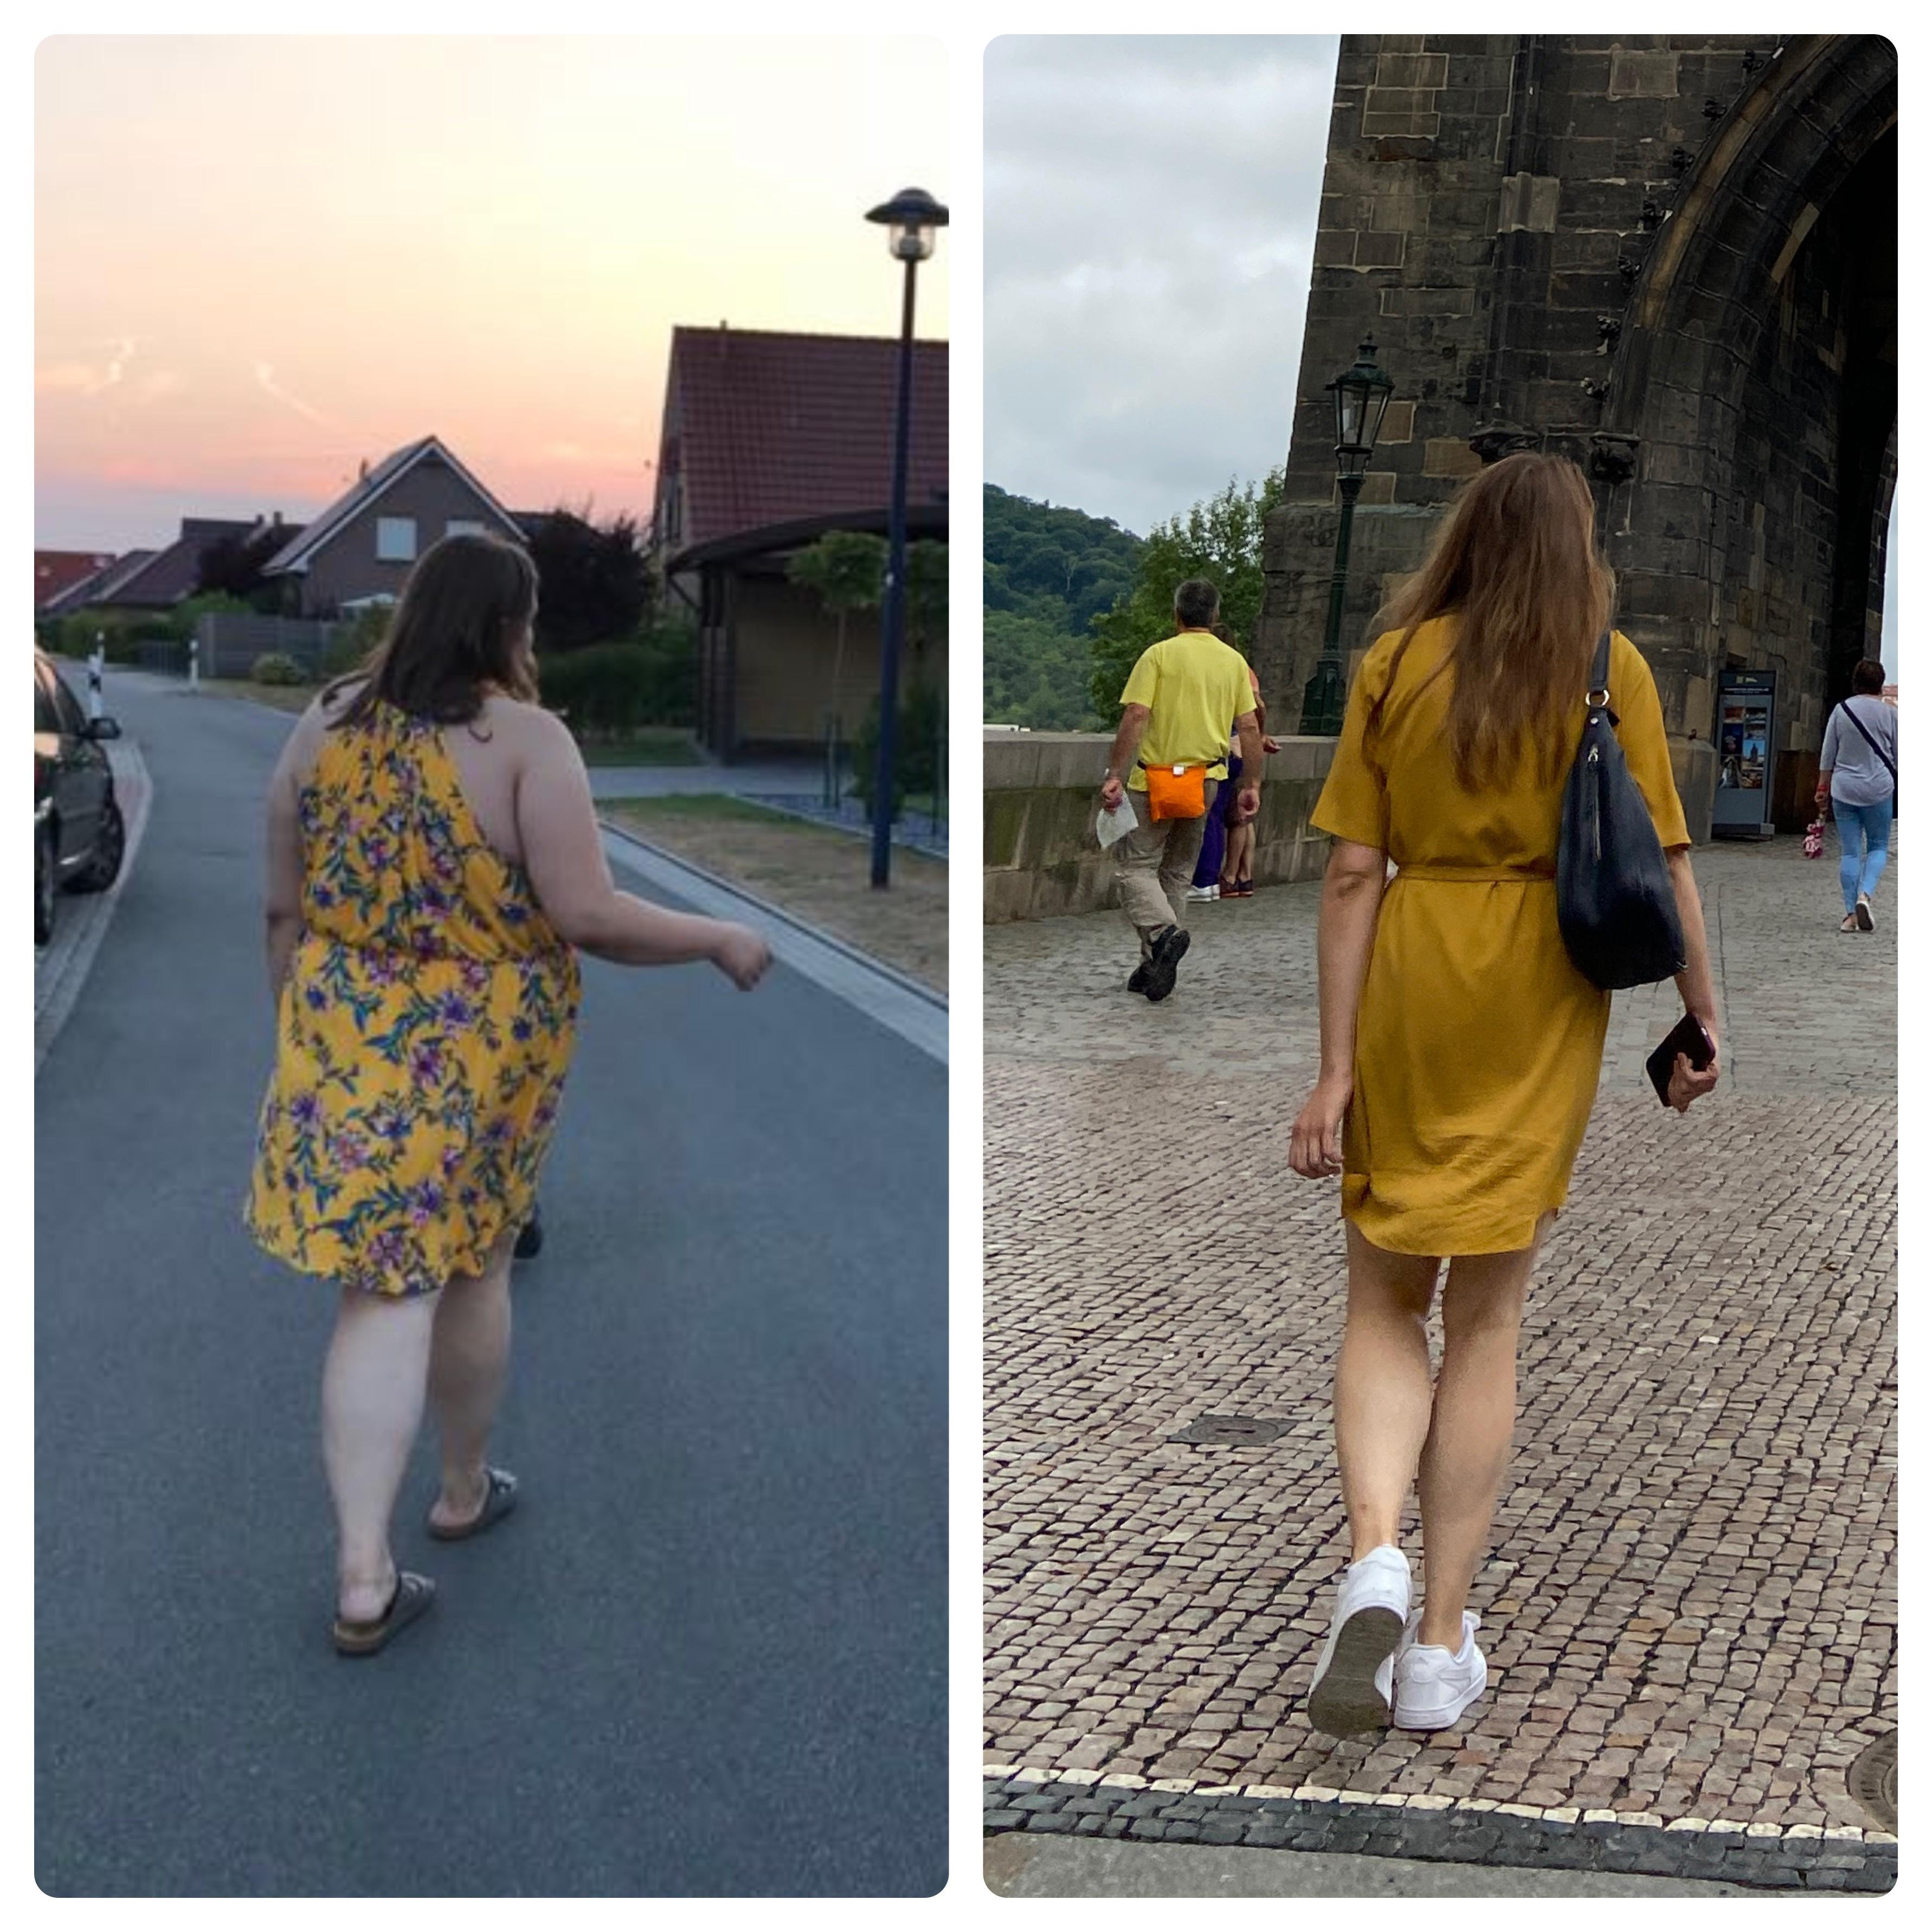 5 foot 10 Female 121 lbs Fat Loss Before and After 286 lbs to 165 lbs